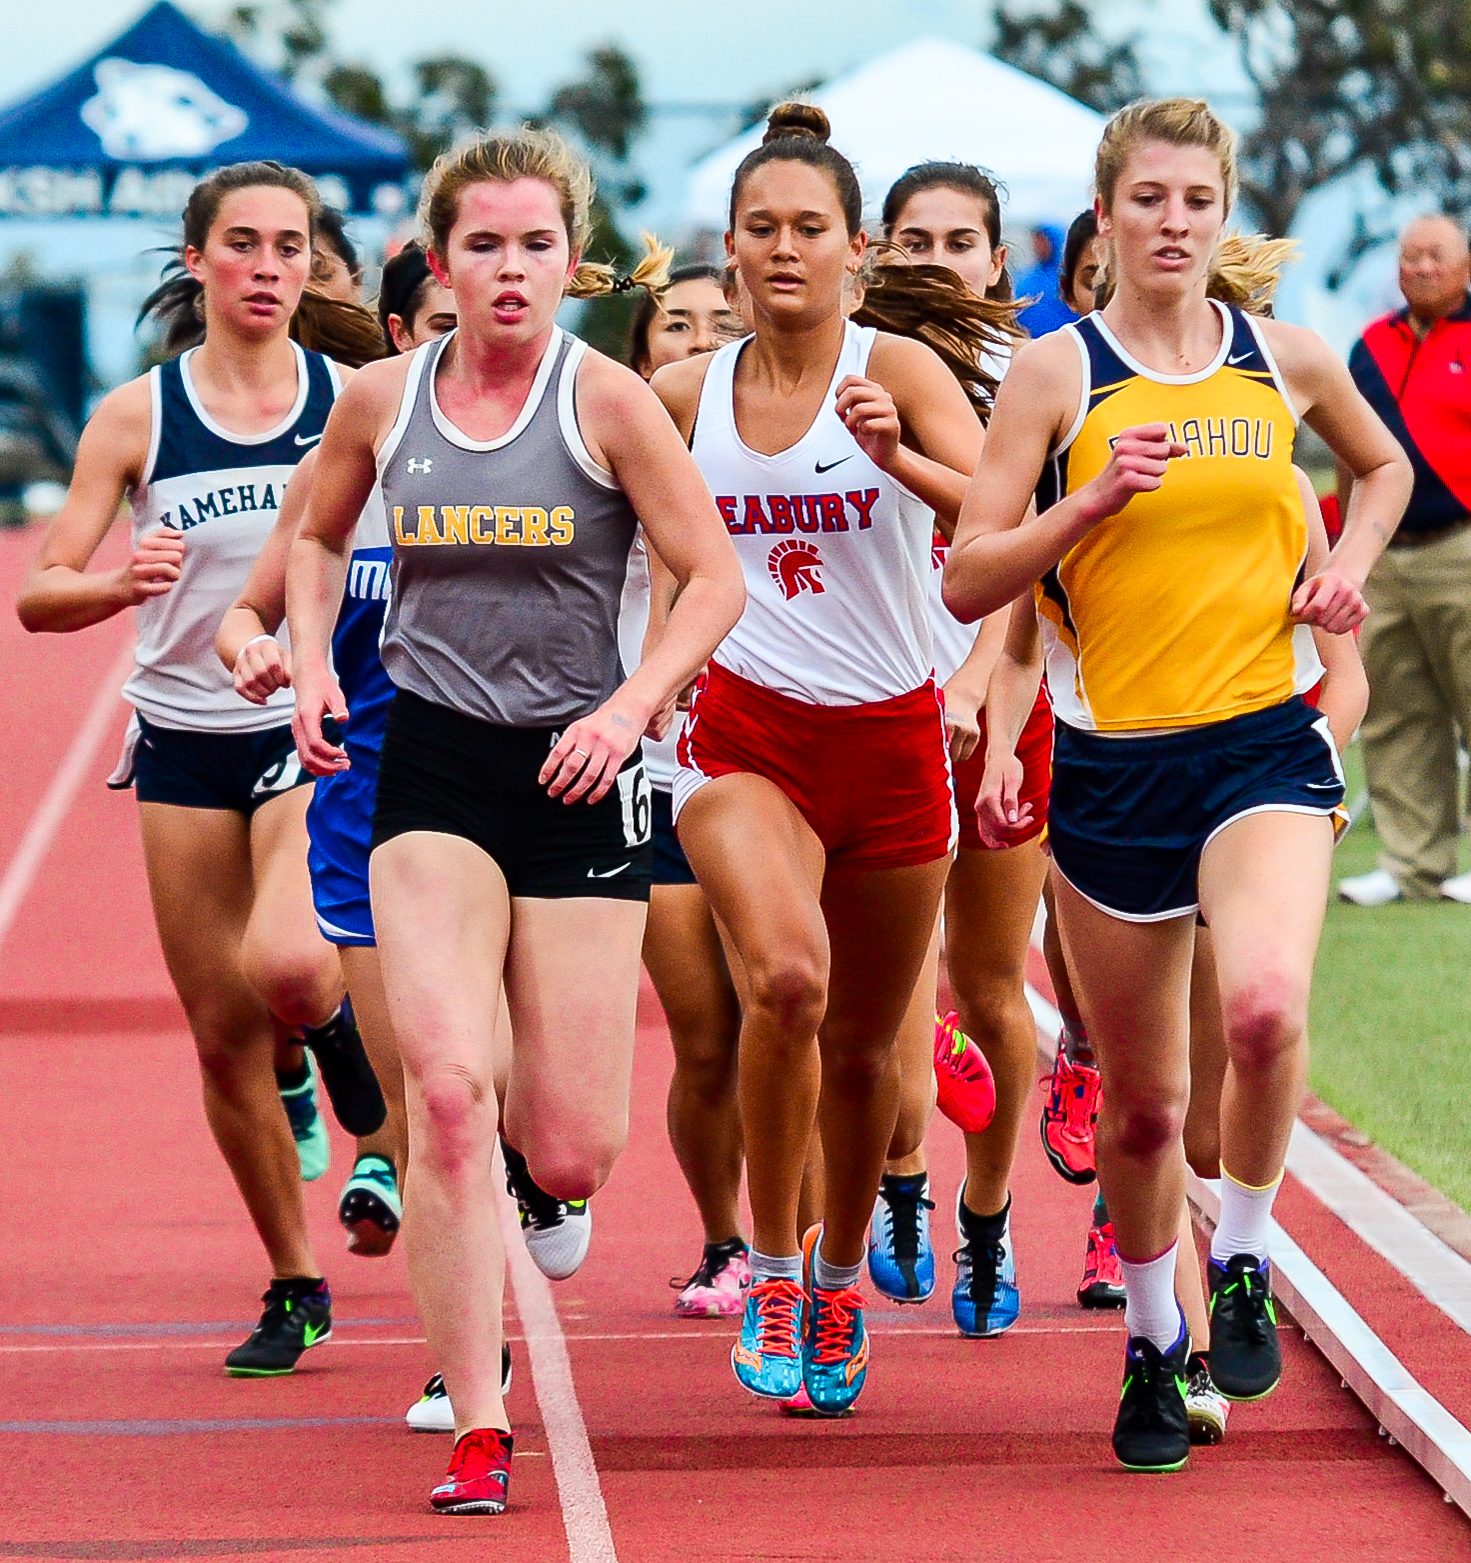 Seabury Hall's Ava Shipman recaps running the 1,500 at lat Saturday's state track and field championships on Oahu. Photo by Rodney S. Yap.